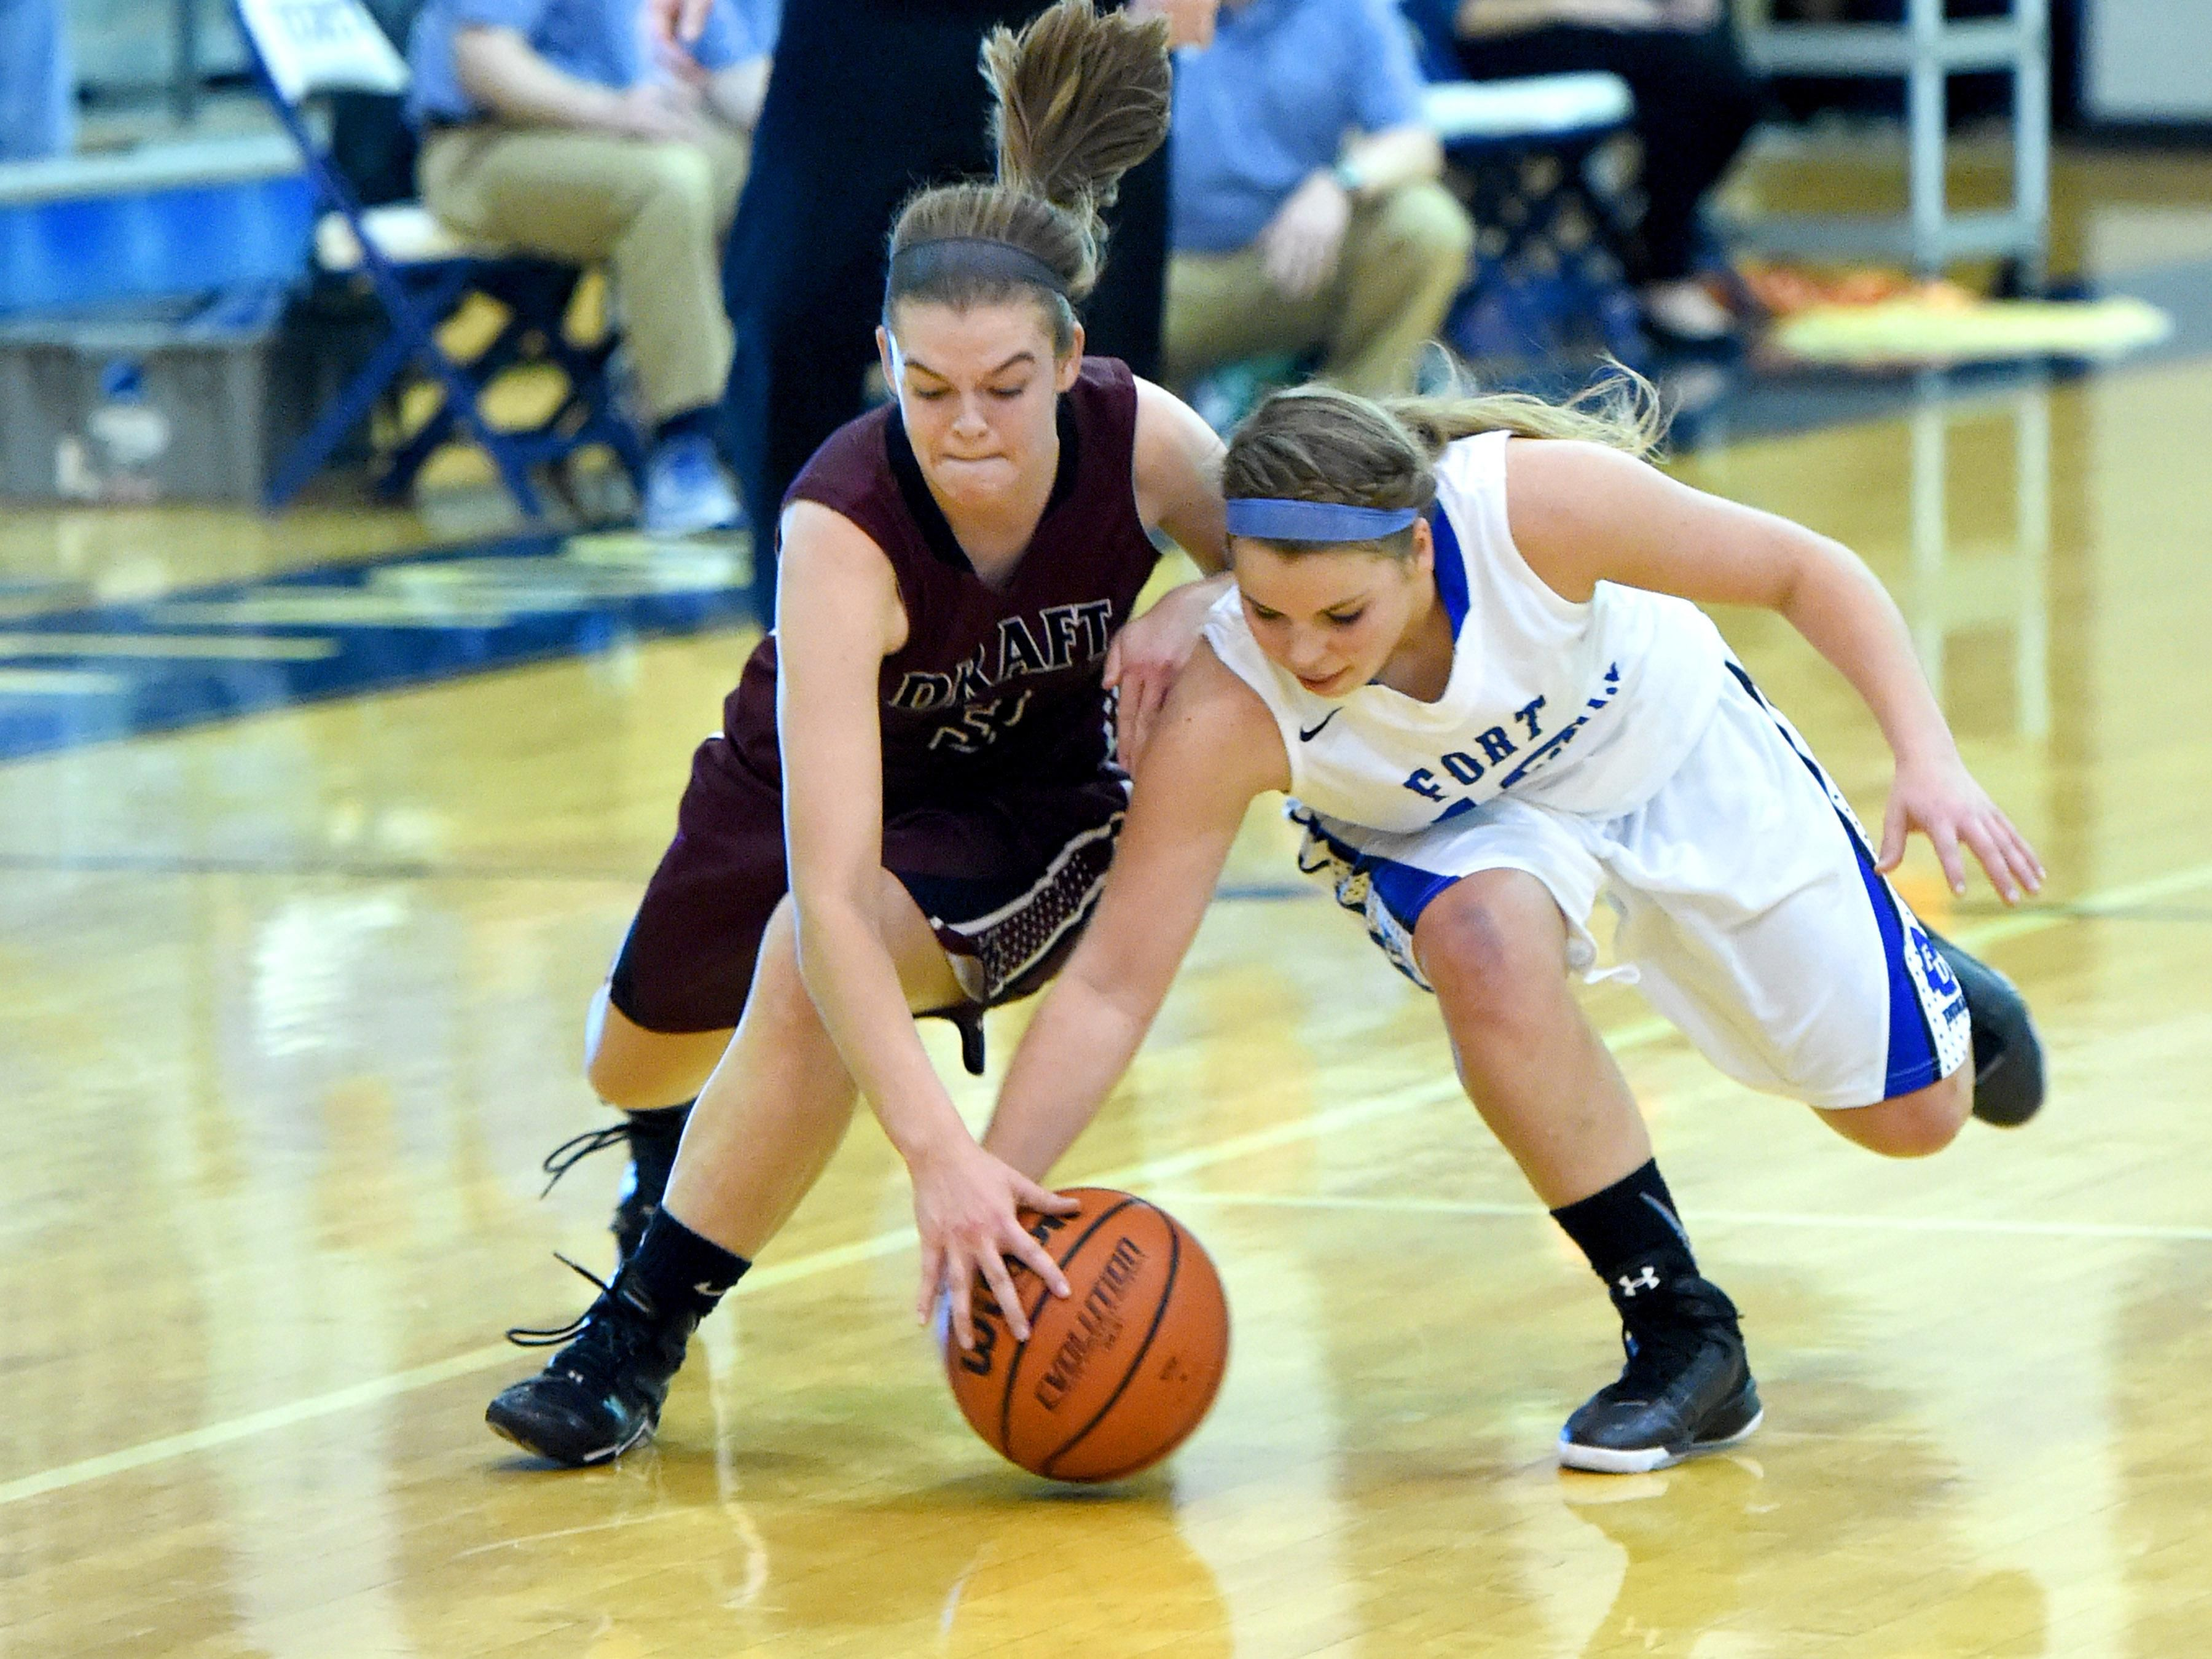 Stuarts Draft's Rachel Sauder and Fort Defiance's Lizzie Doughty chase after a loose ball during a basketball game played in Fort Defiance on Friday, Dec. 11, 2015.